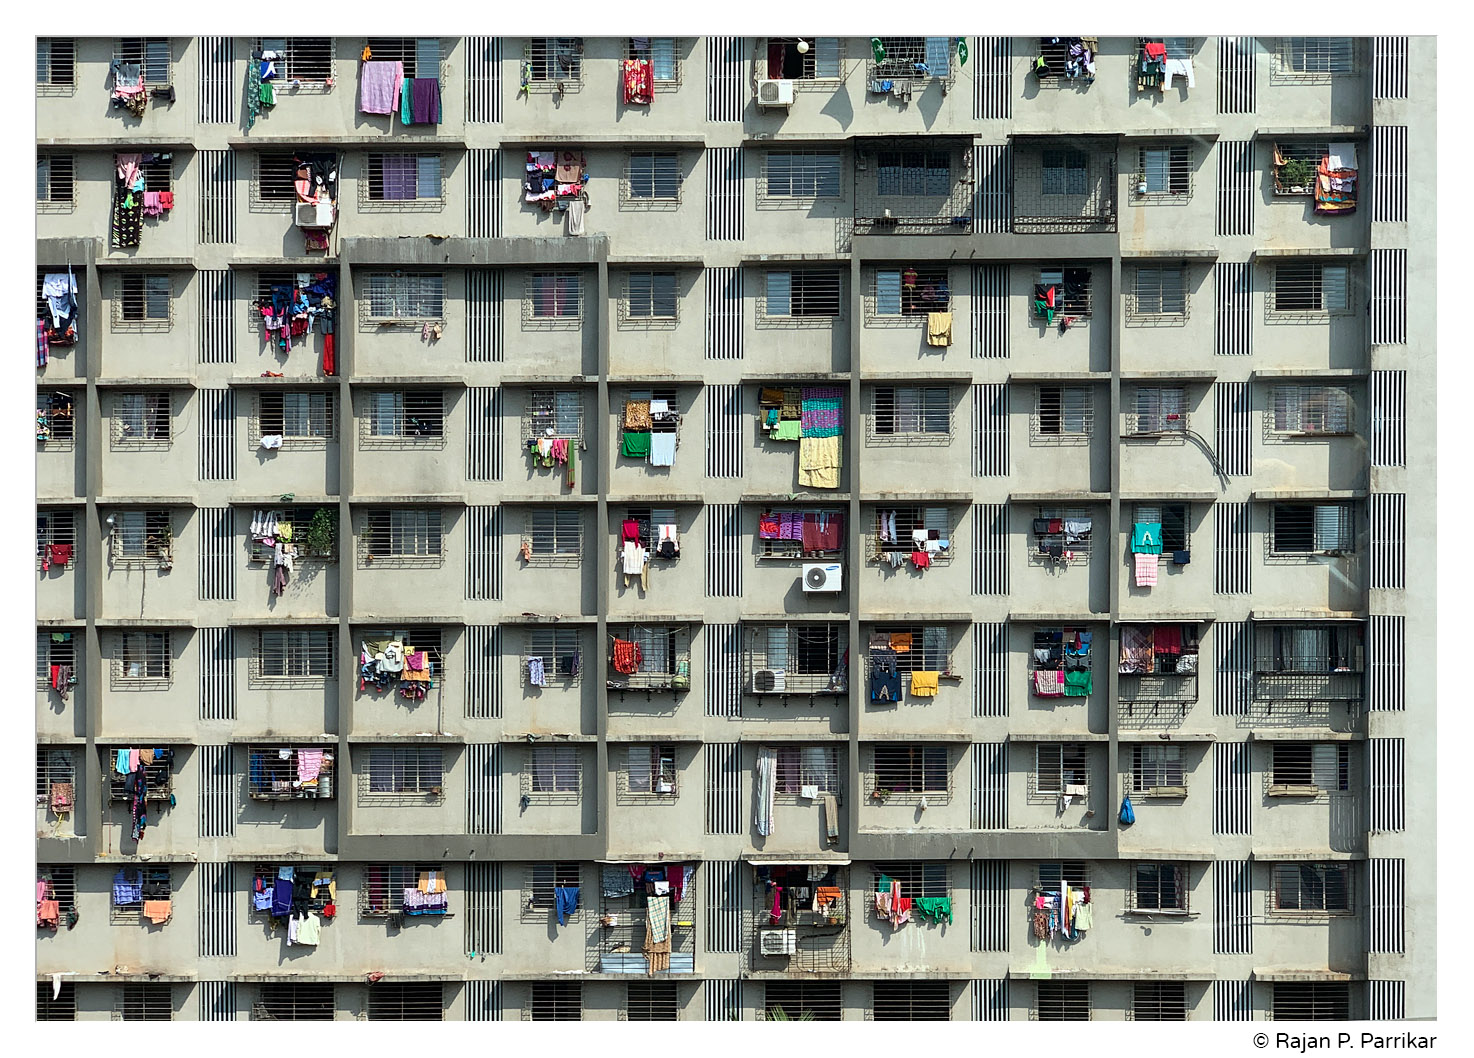 Building façade in Mumbai, India